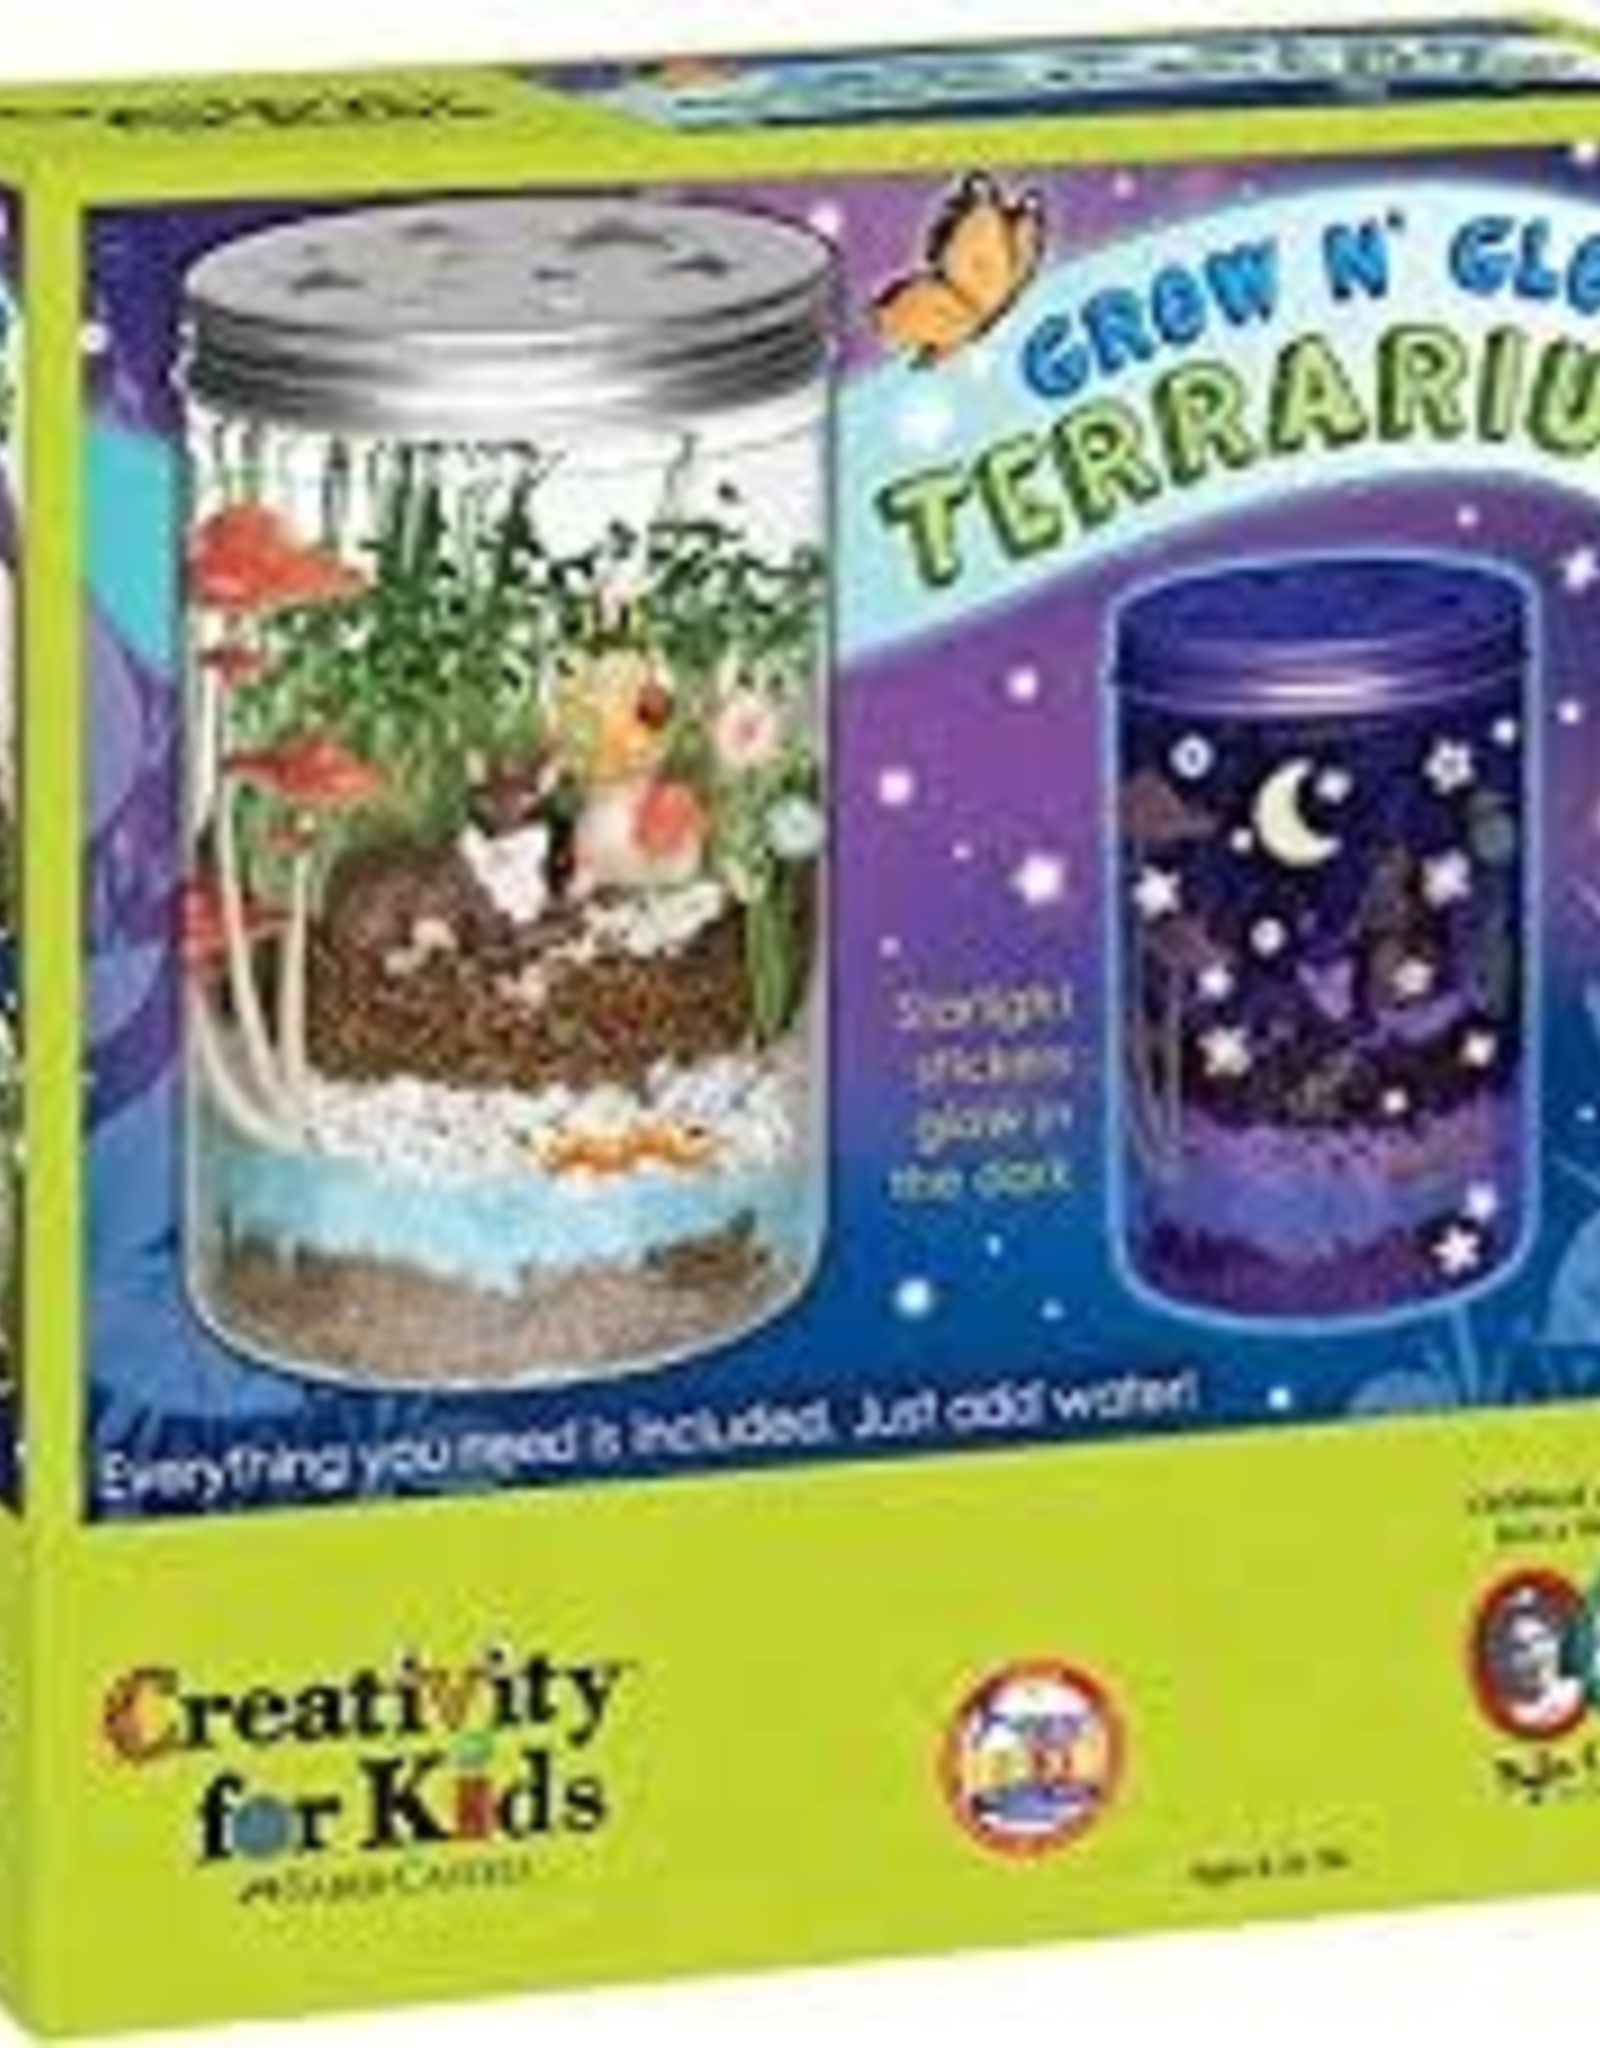 Creativity For Kids Grow & Glow Terrarium